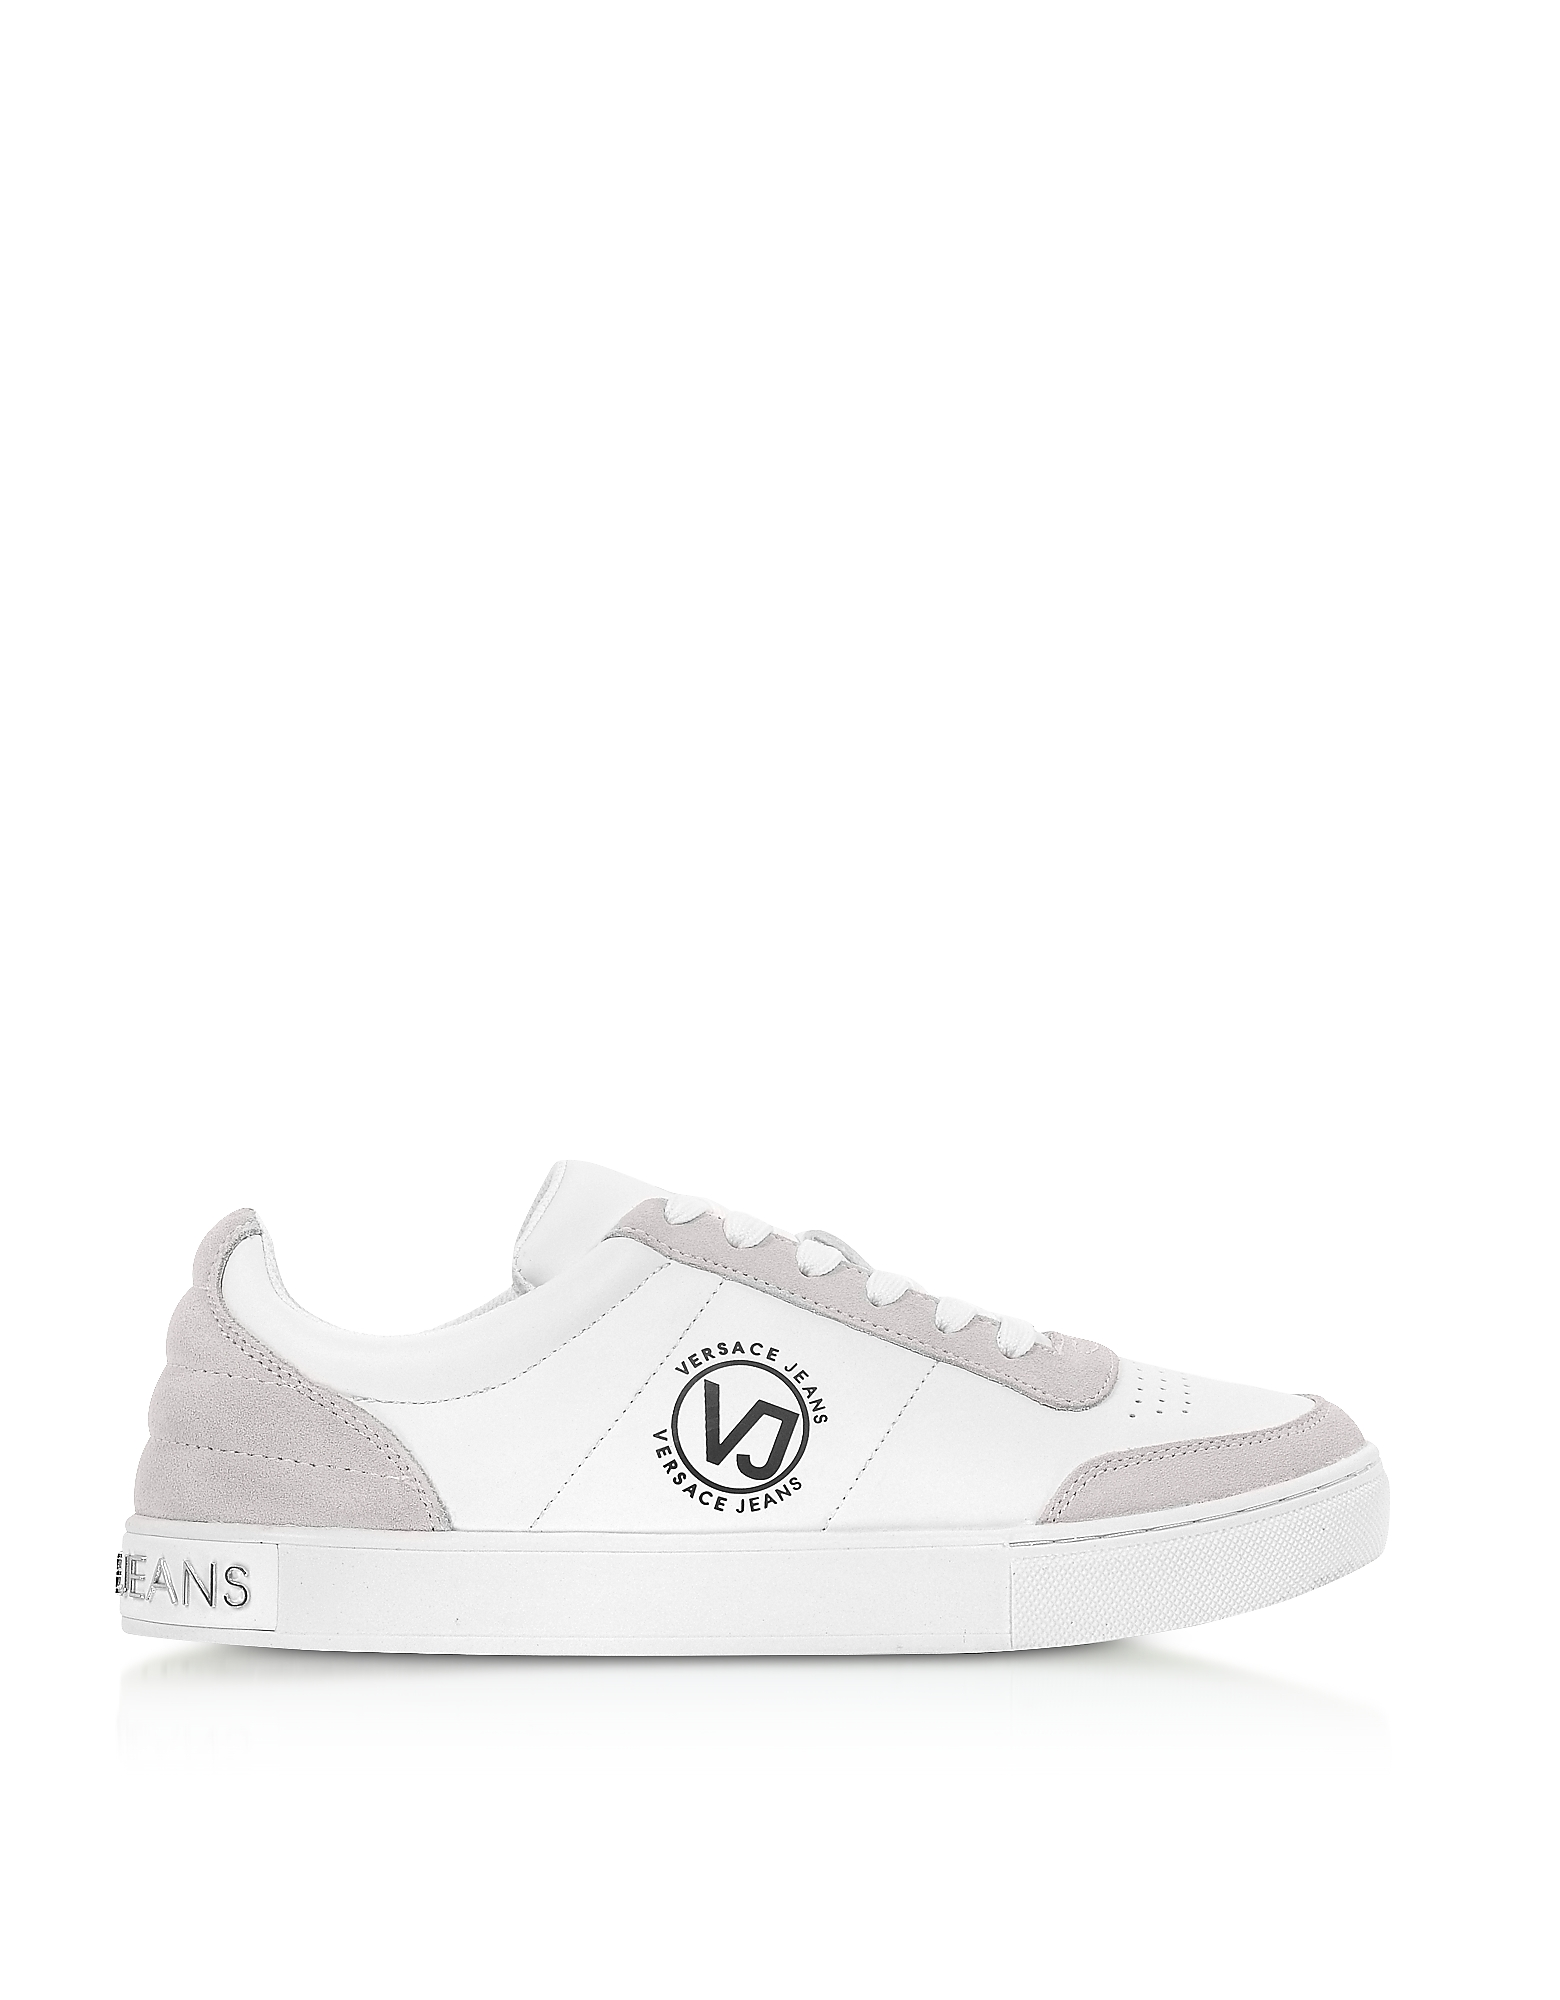 Versace Jeans Designer Shoes, White Leather & Suede Signature Sneakers